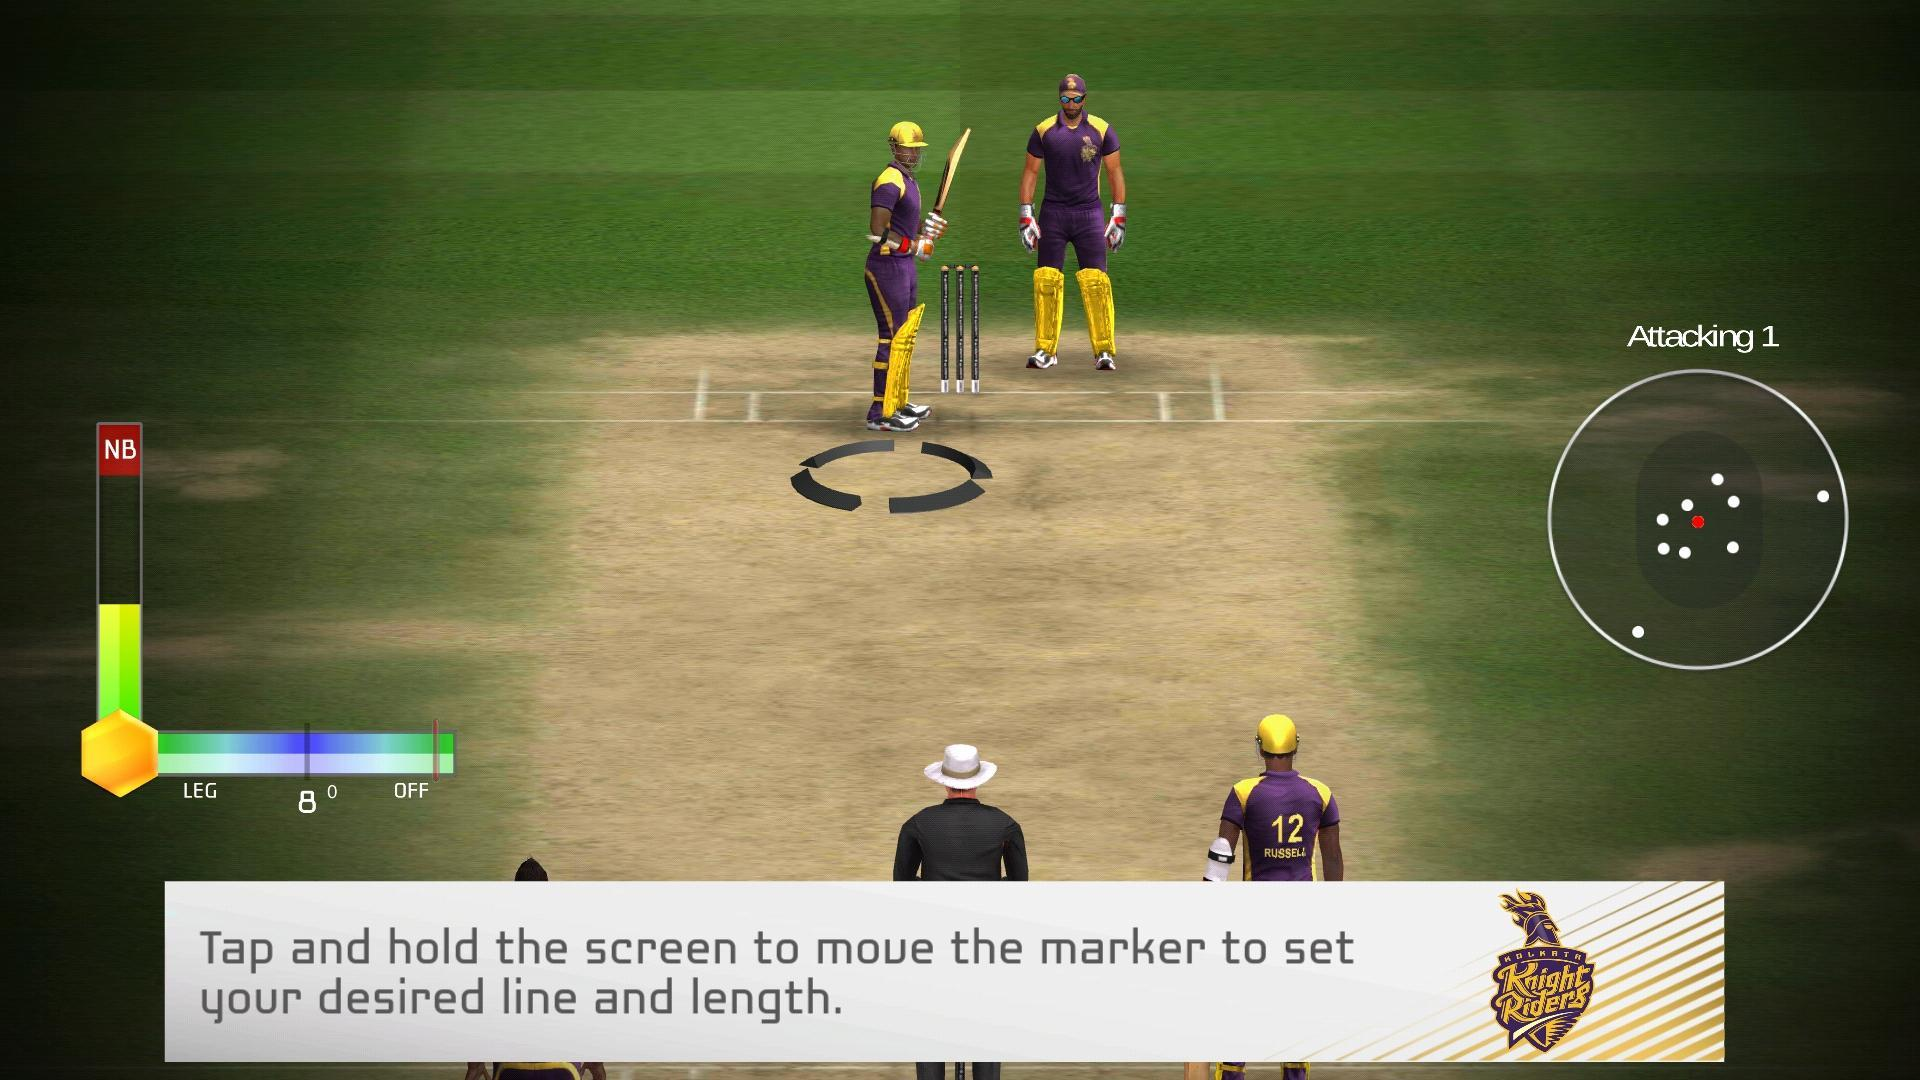 KKR Cricket 2018 for Android - APK Download